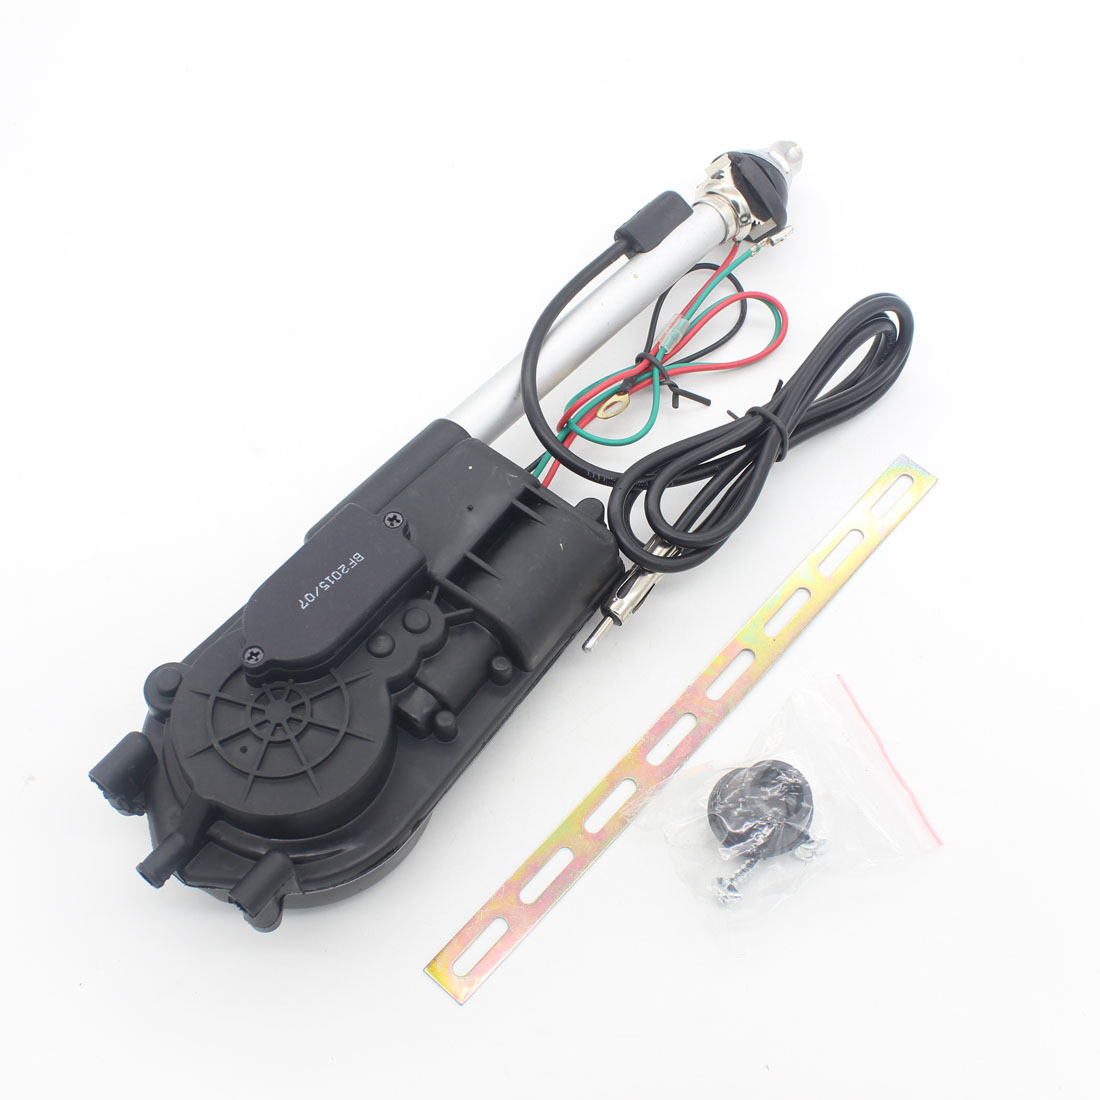 1X Universal Auto Car Aerial Antena Electric Radio Antenna Automatic Booster SUV Electric Power 12V FM/AM Retractable Antenna hot sale 3 5mm fm radio antenna retractable aerial for auto car mobile phone noyokere